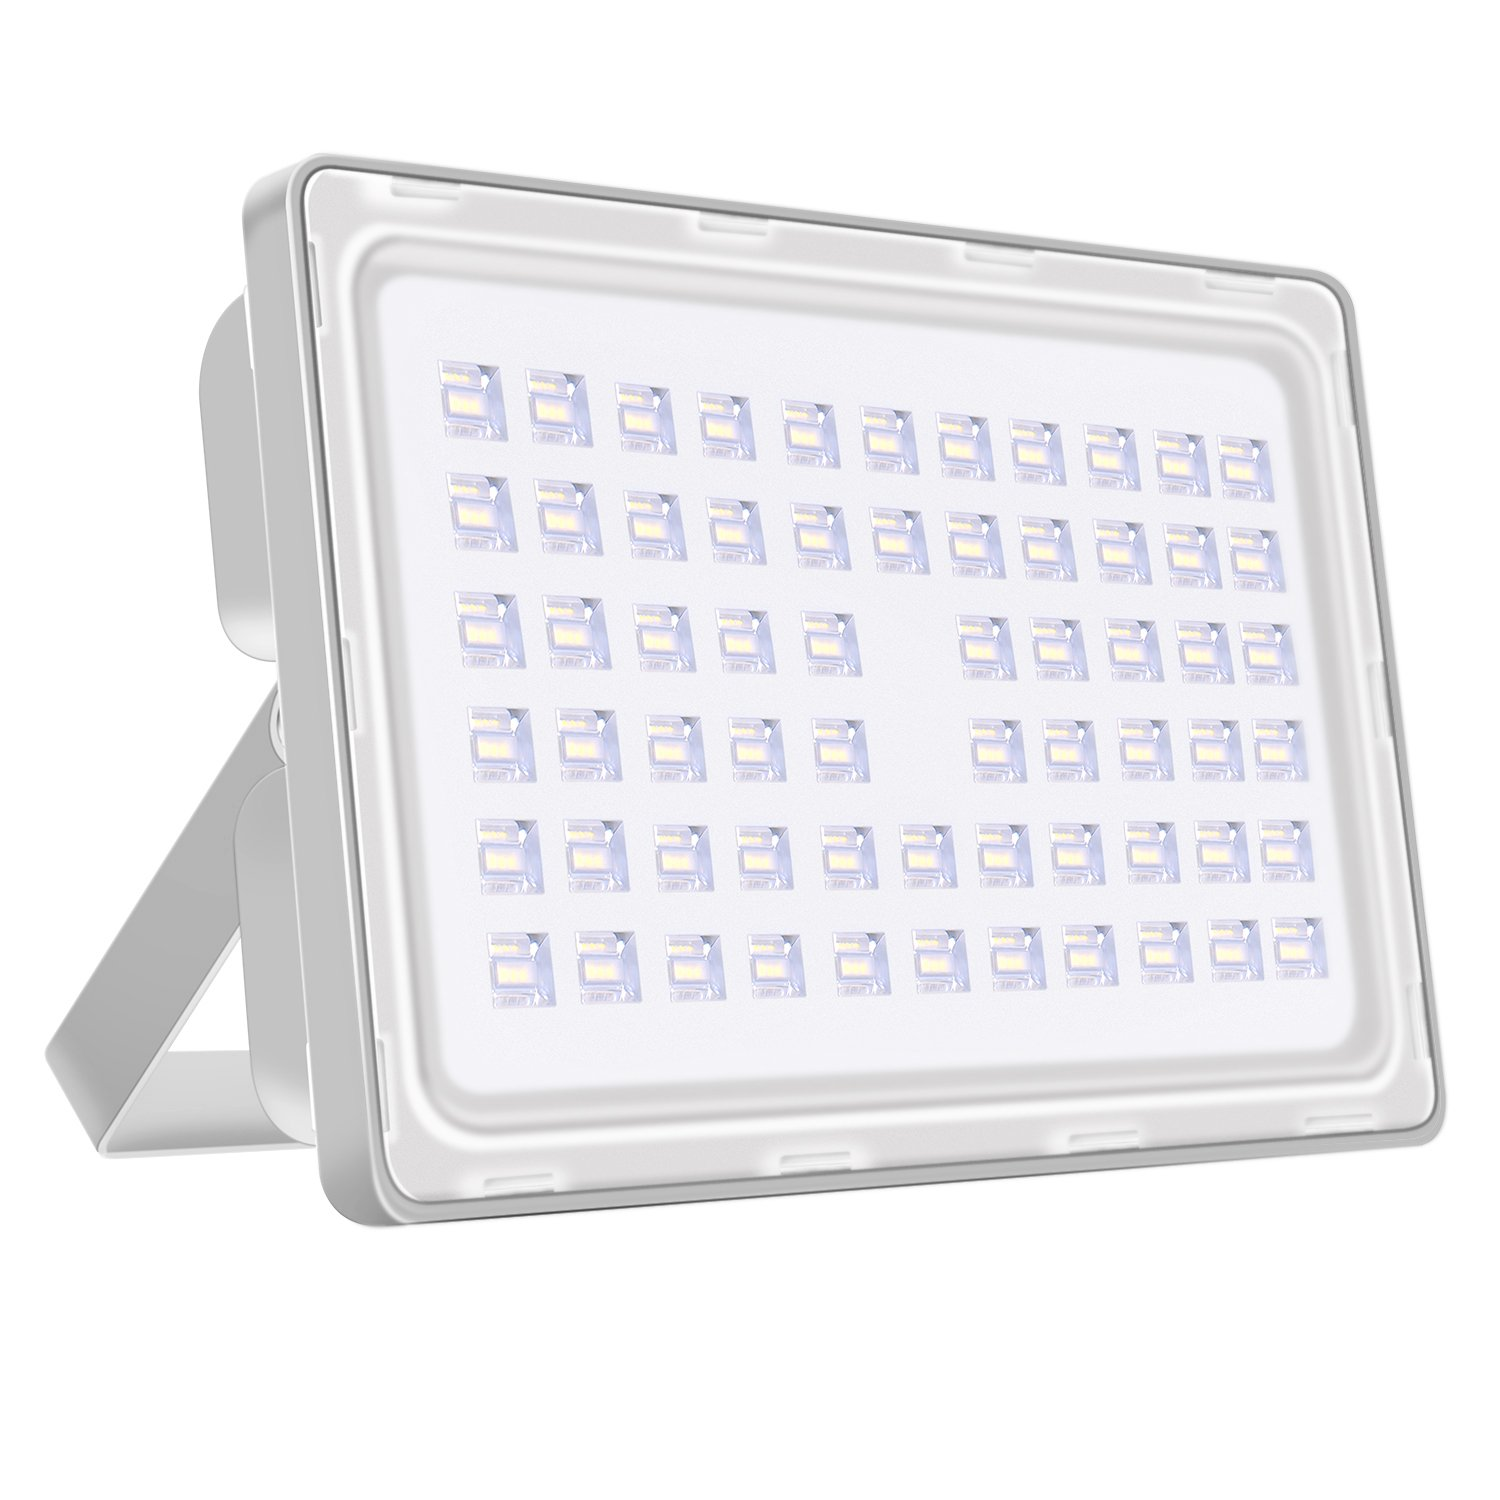 Viugreum 200W LED Outdoor Flood Lights,Thinner and Lighter Design,Waterproof IP65 20000LM,Daylight White(6000-6500K),Super Bright Security Lights,Factory ,Stadium Lamp for Garden,Yard,Warehouse,Square by Viugreum